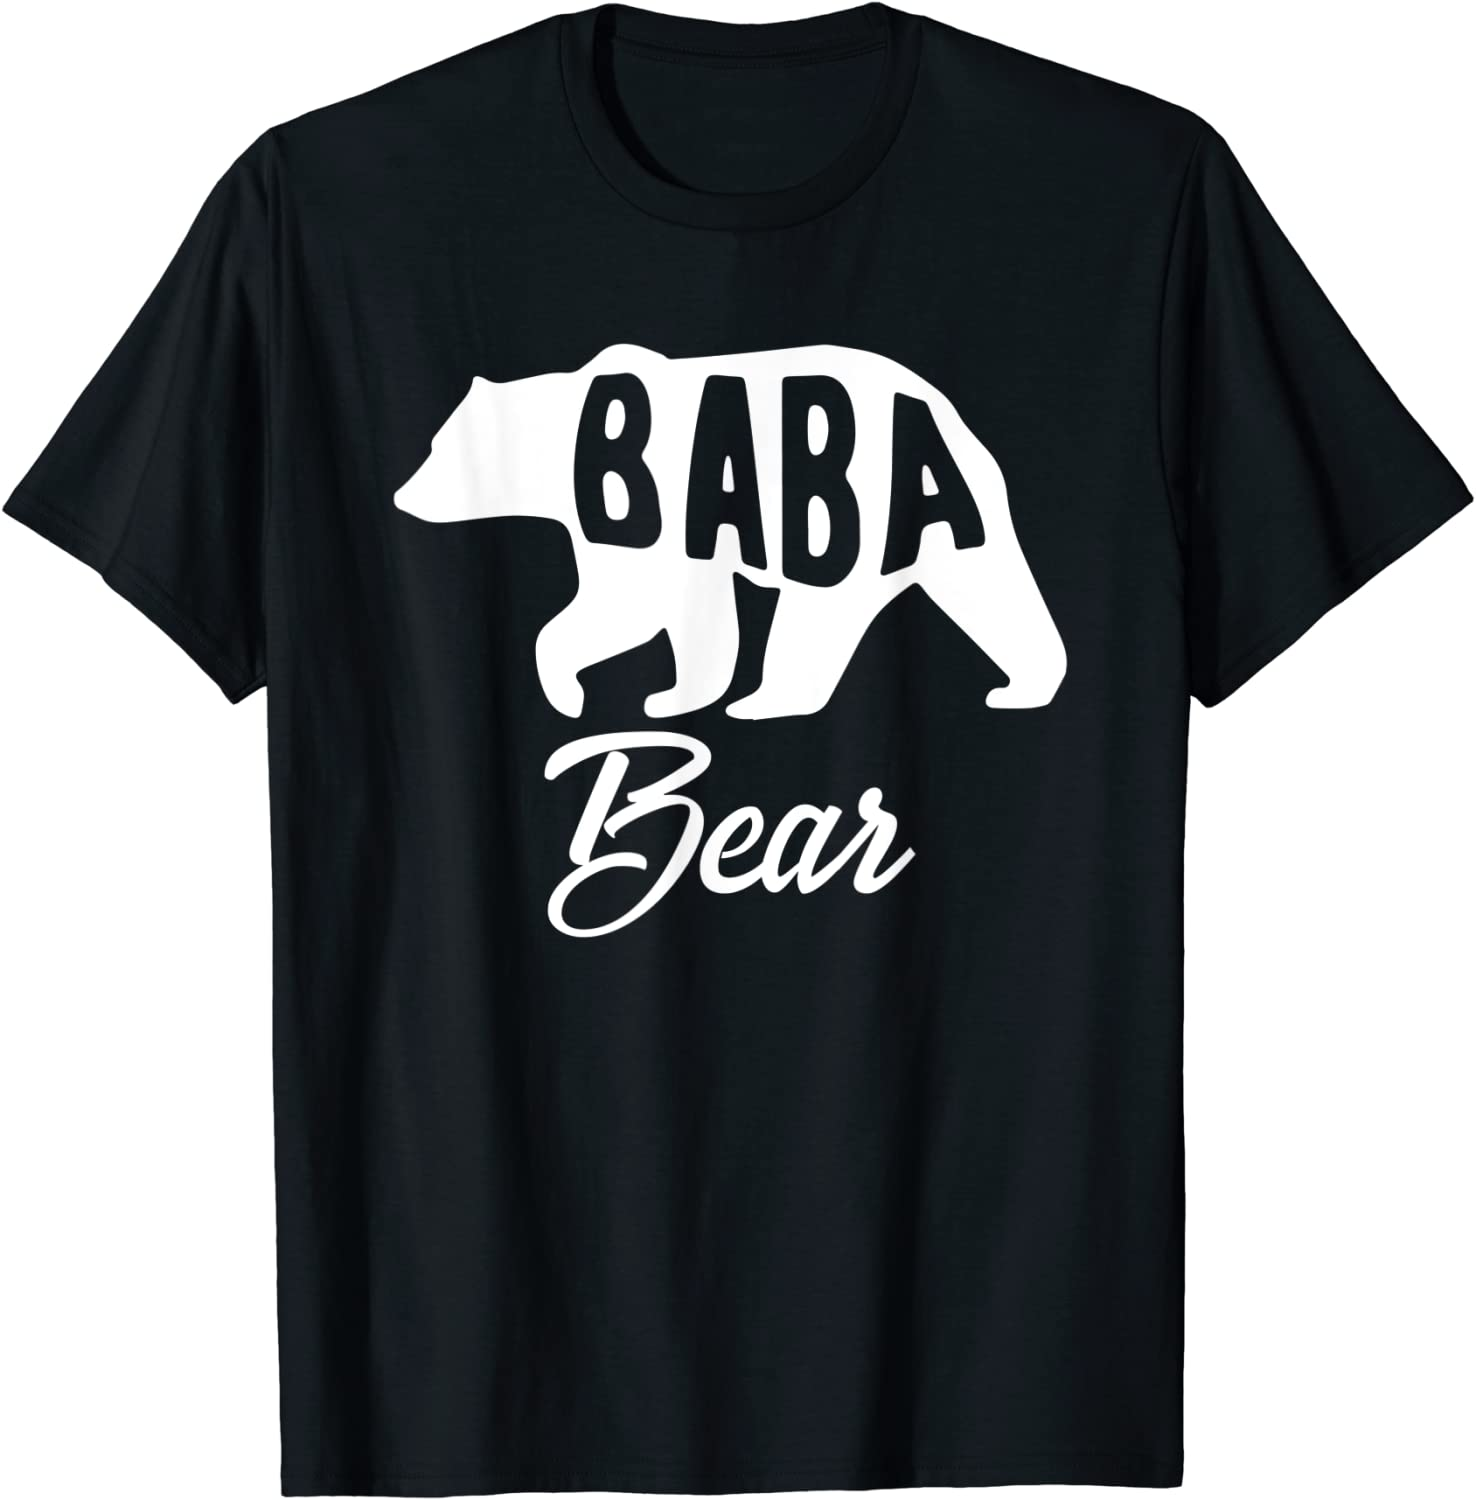 Papa Bear T Shirt Gifts For Dad Fathers Day Gifts Dads T Shirts Funny Tees Gift